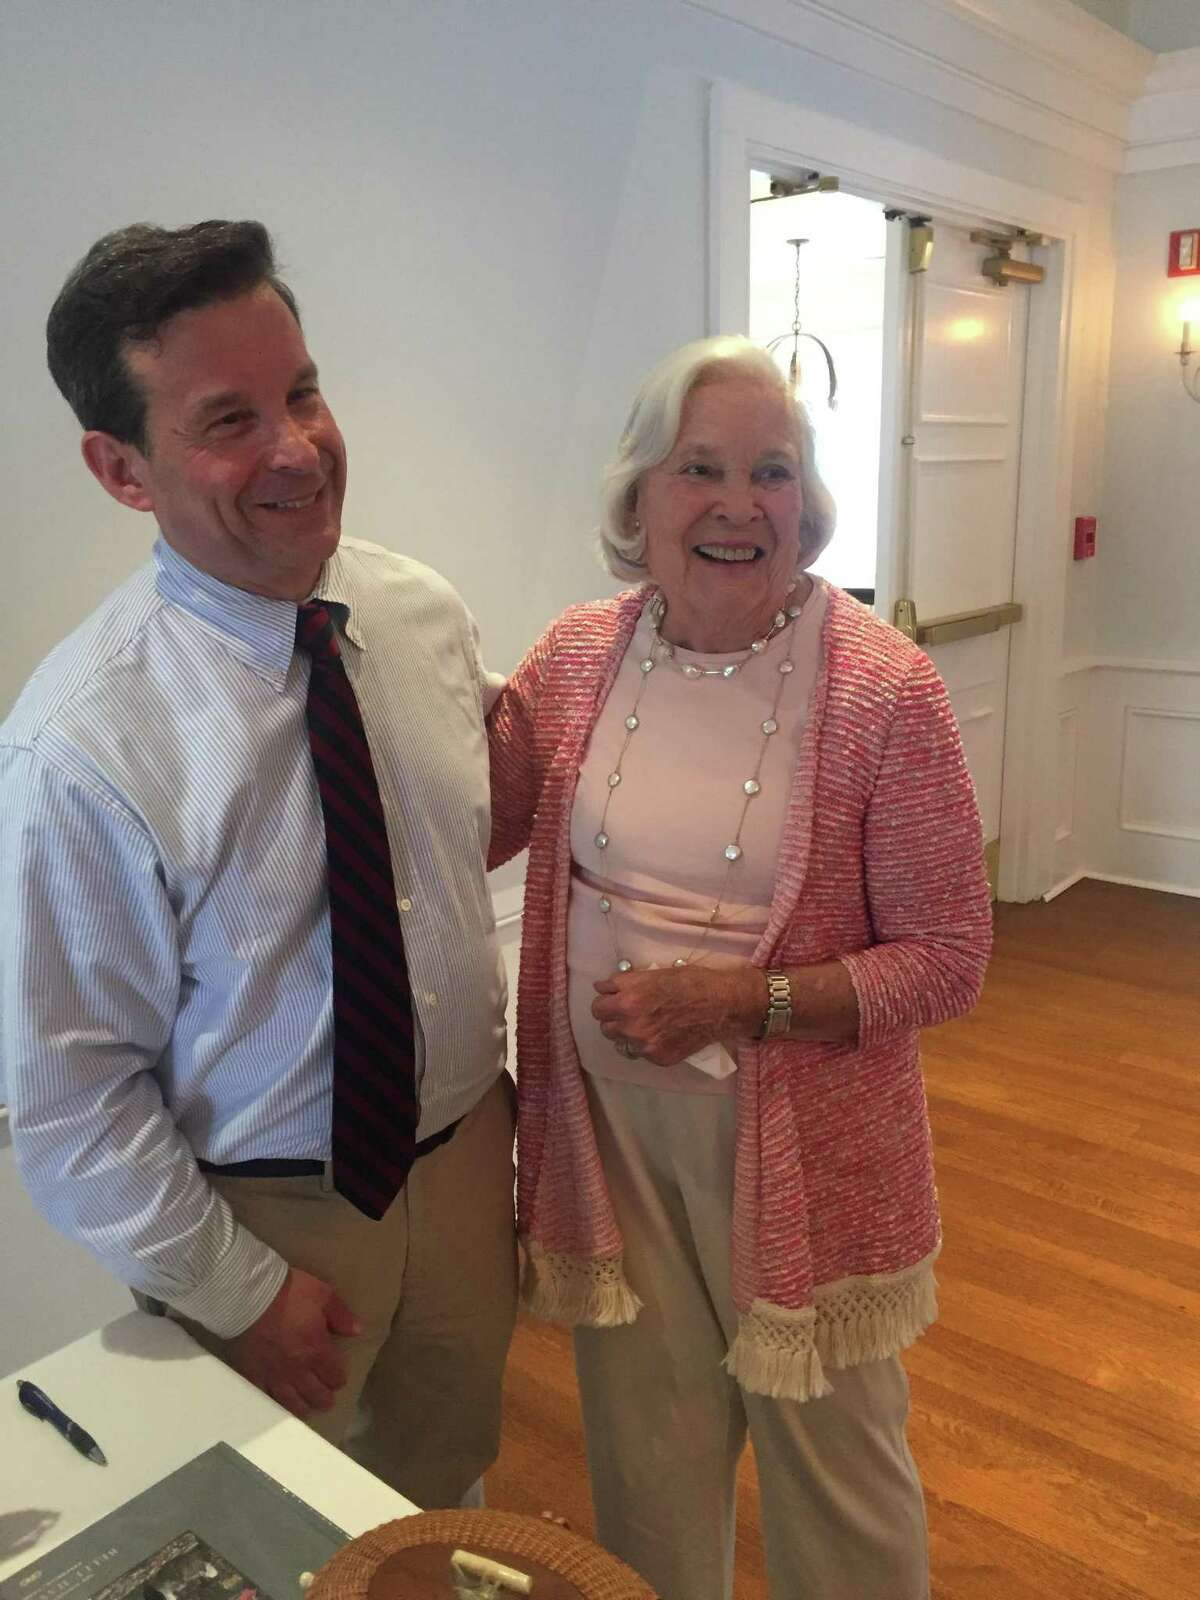 Greenwich resident and author Matt Bernard meets with Belle Haven resident Judy Higgins, his former neighbor, at a book signing to benefit Community Centers Inc. at the Belle Haven Club.